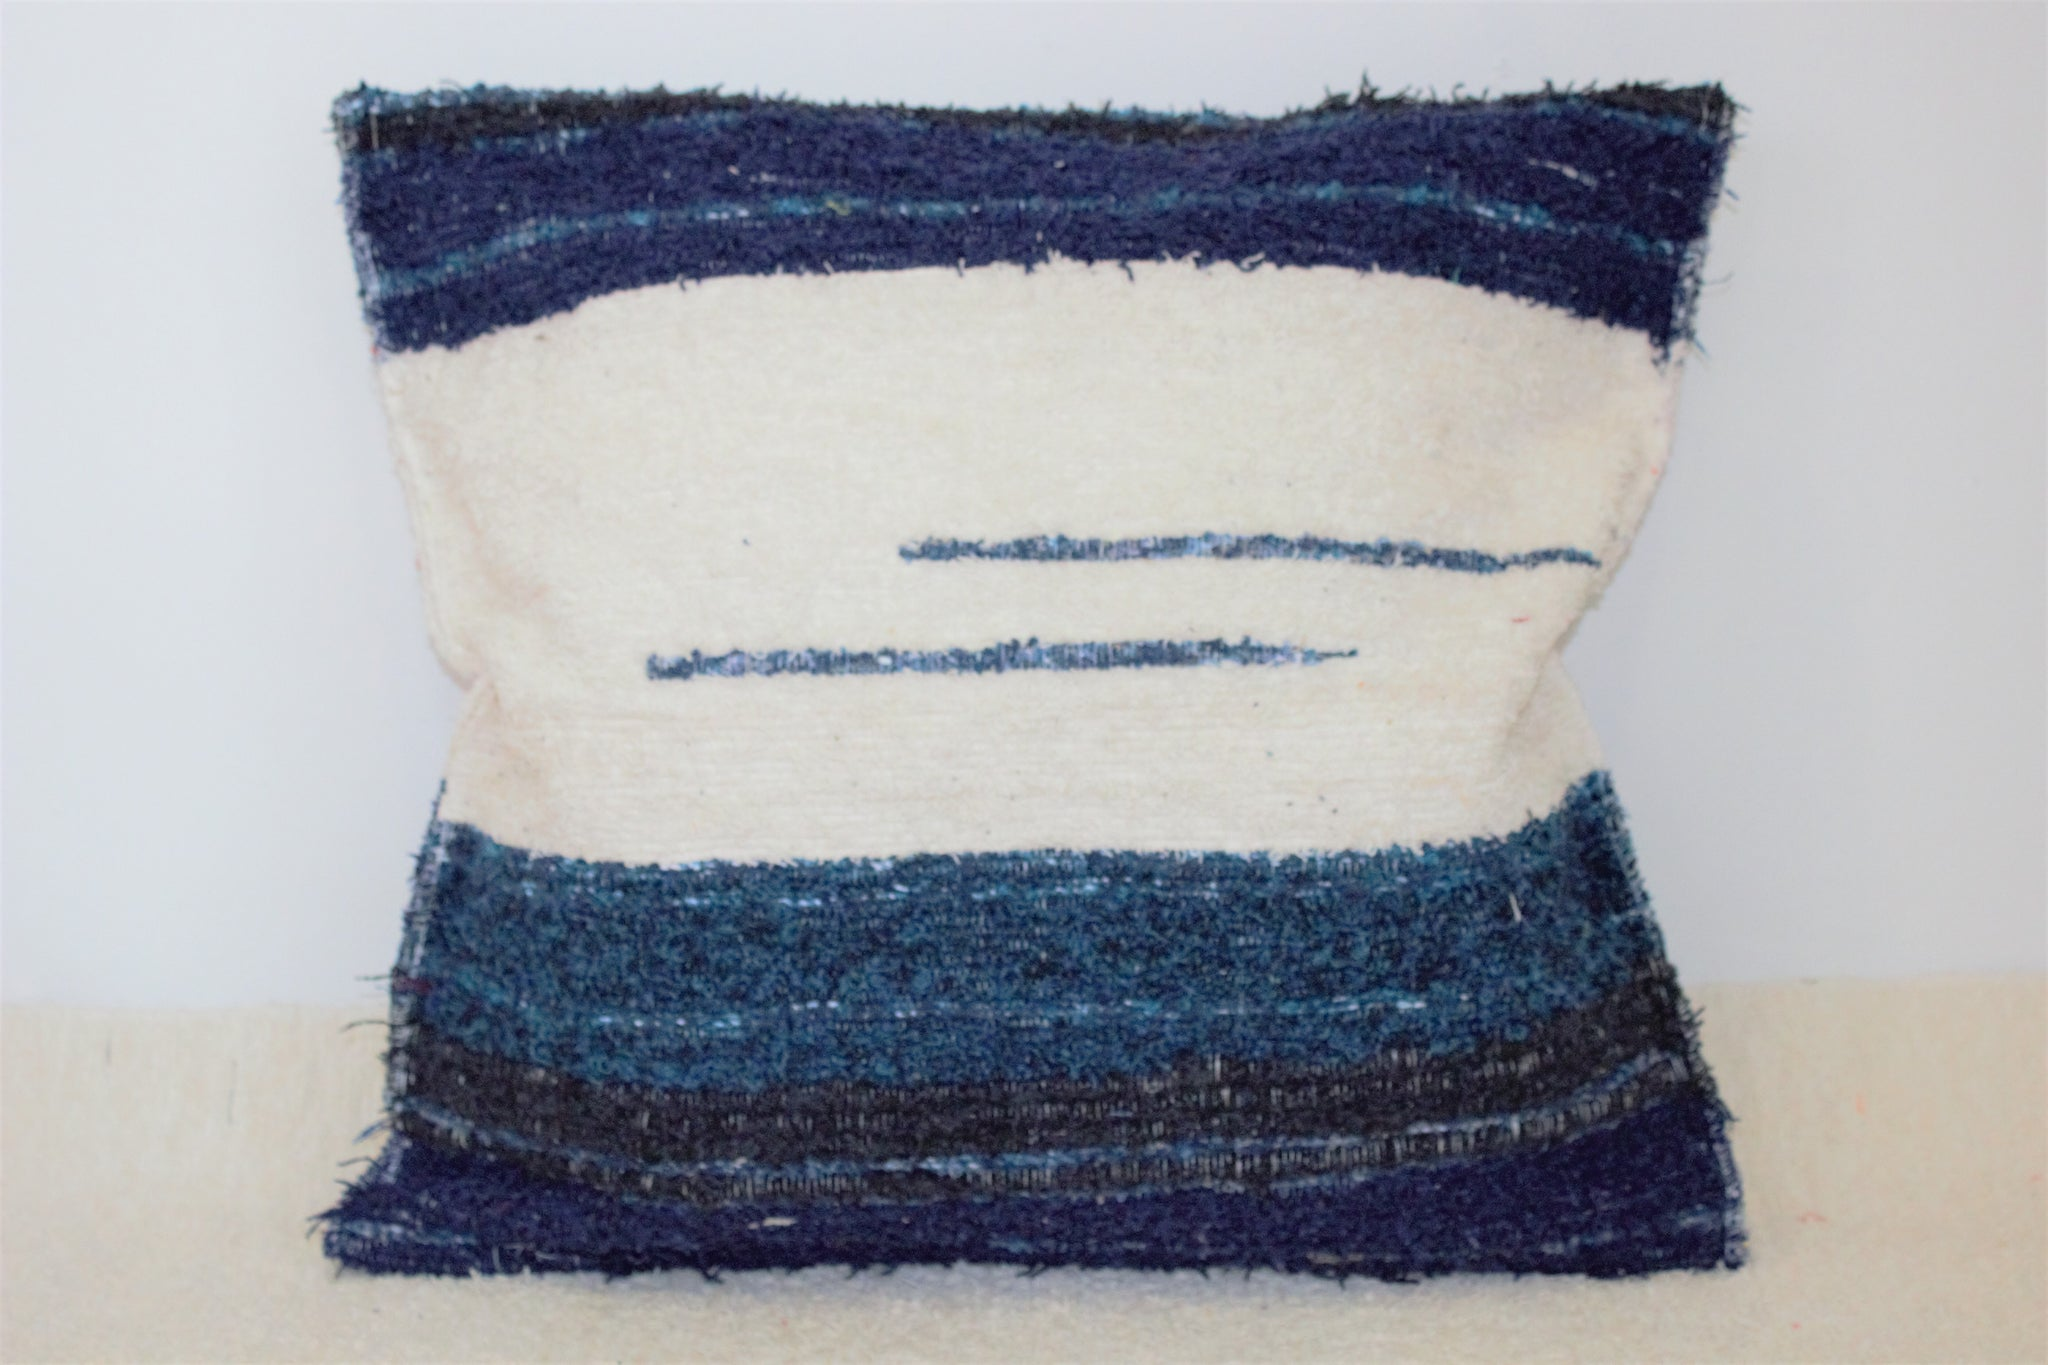 Off-white and dark blue handmade cushion cover